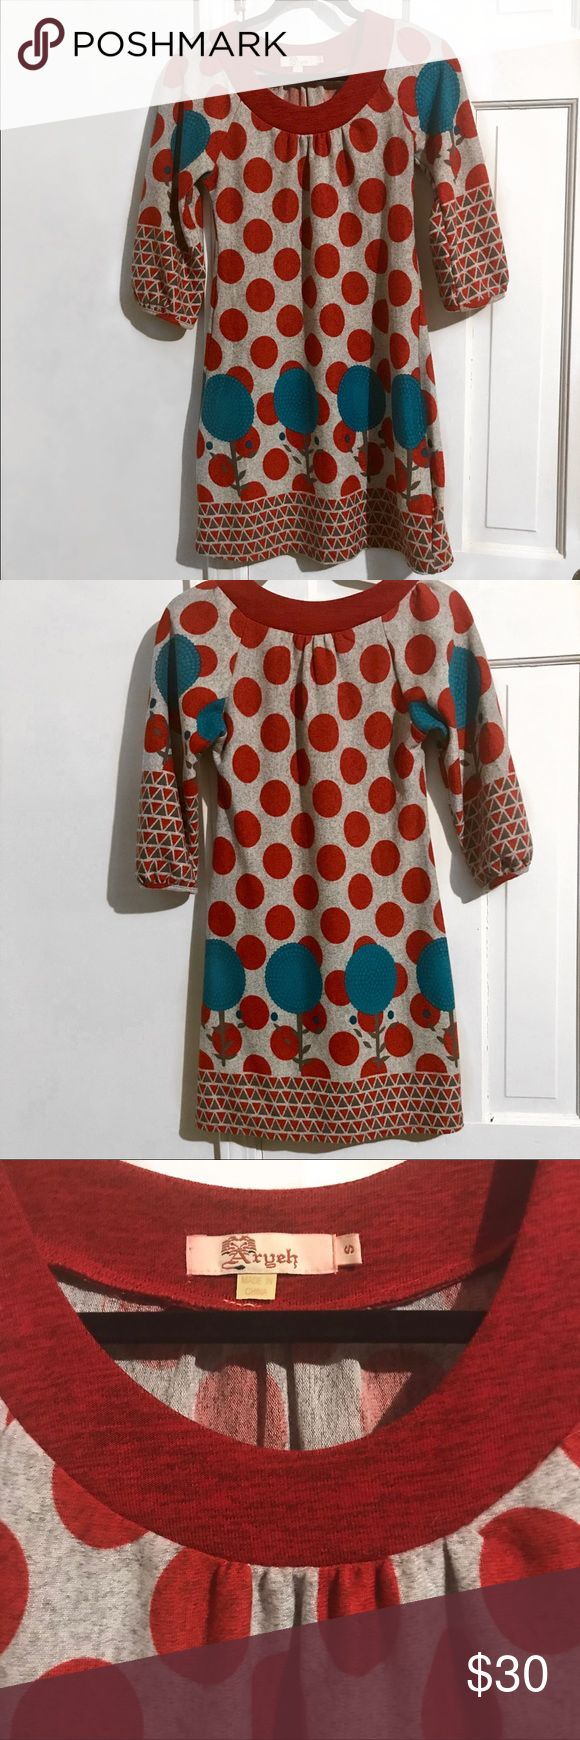 Aryeh | Anthropology Dress | Small | Gray Red Teal Aryeh | Anthropology Dress   Small  Gray background accented with Red & Teal  Perfect Condition!  BUNDLE✨OFFER✨SAVE Anthropologie Dresses